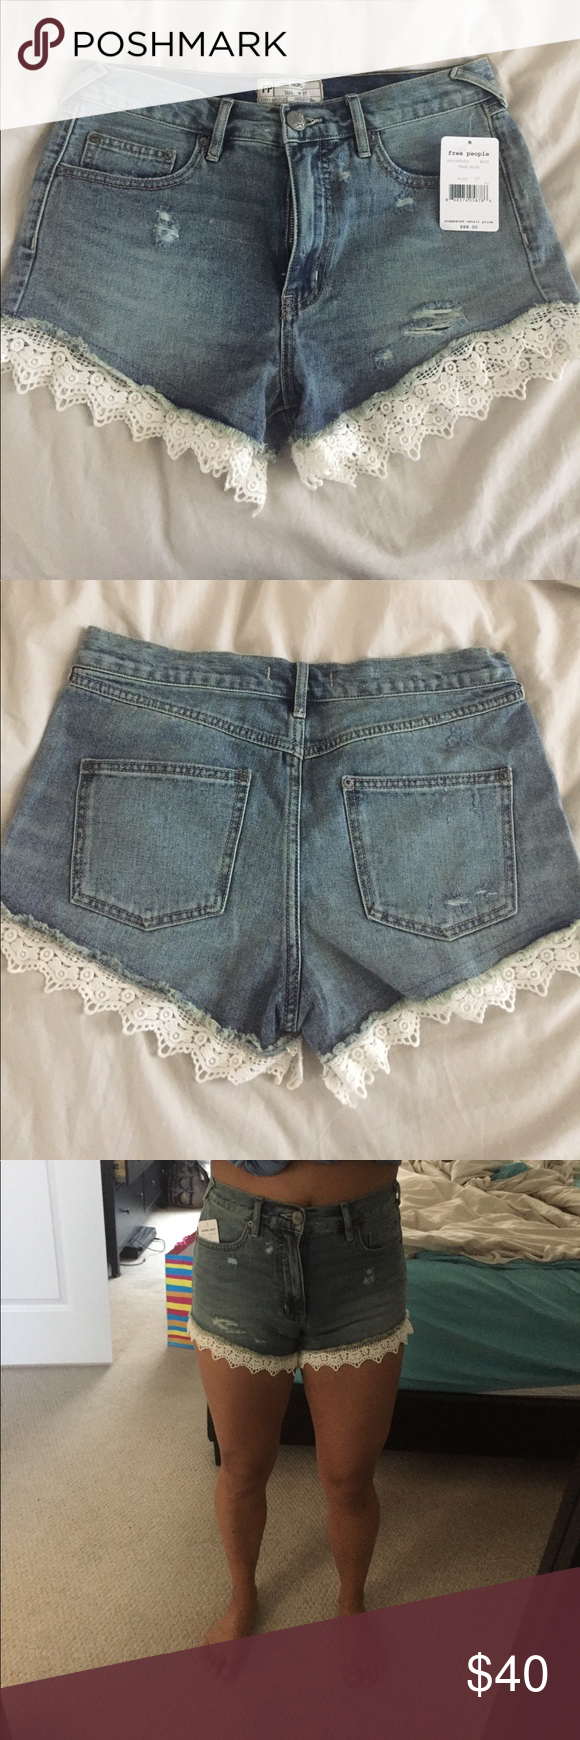 Free People Jean shorts with lace trim Love these shorts! Great to pair anything with! Color is true blue and NWT!! They're a little big on me! Free People Shorts Jean Shorts